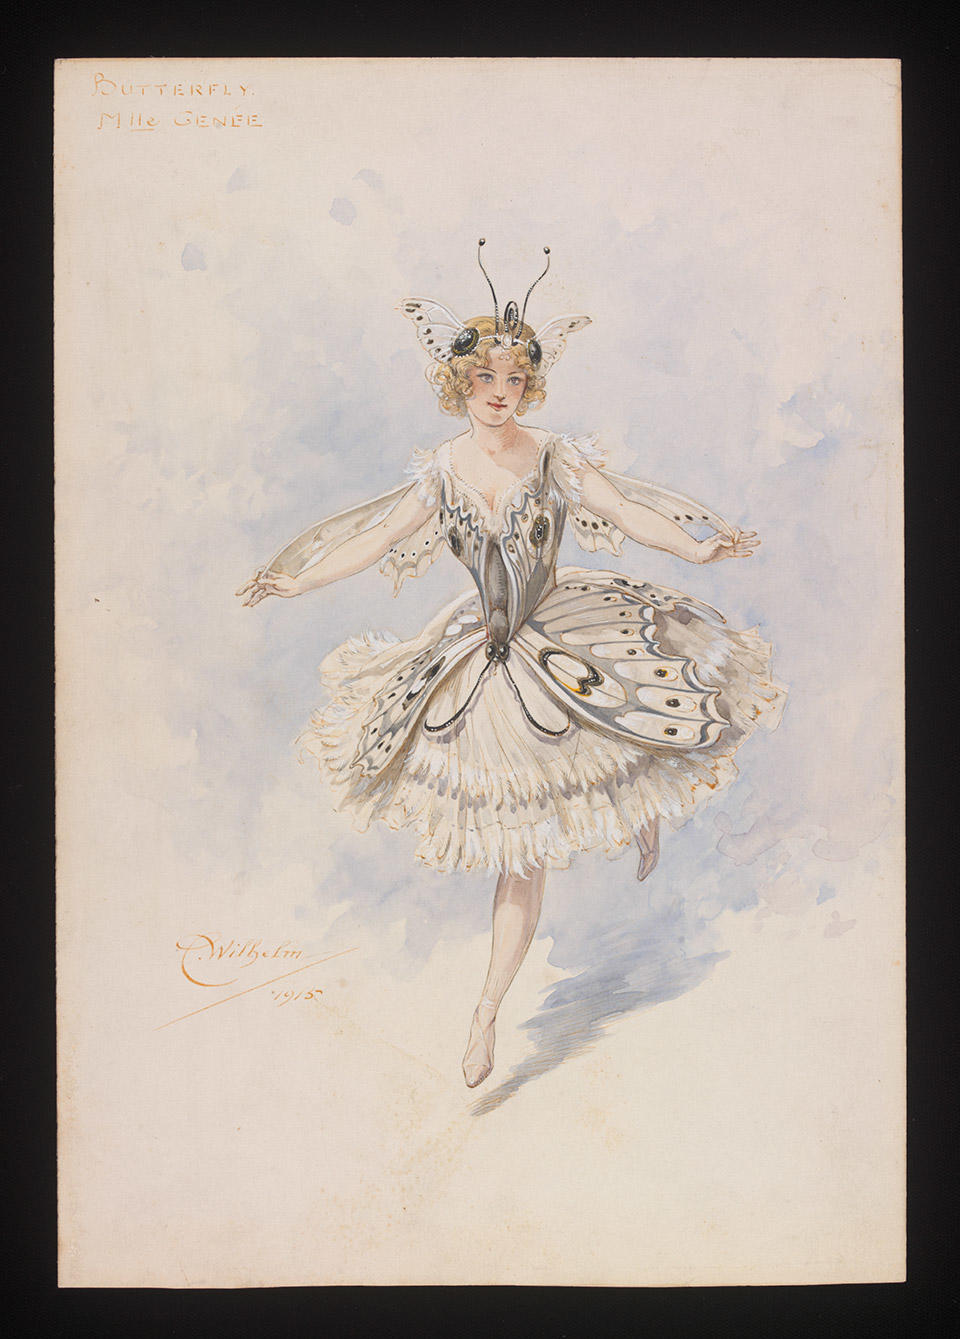 Costume-design-by-Wilhelm-for-A-Dream-of-Butterflies-and-Roses-©-Victoria-and-Albert-Museum,-London-.jpg